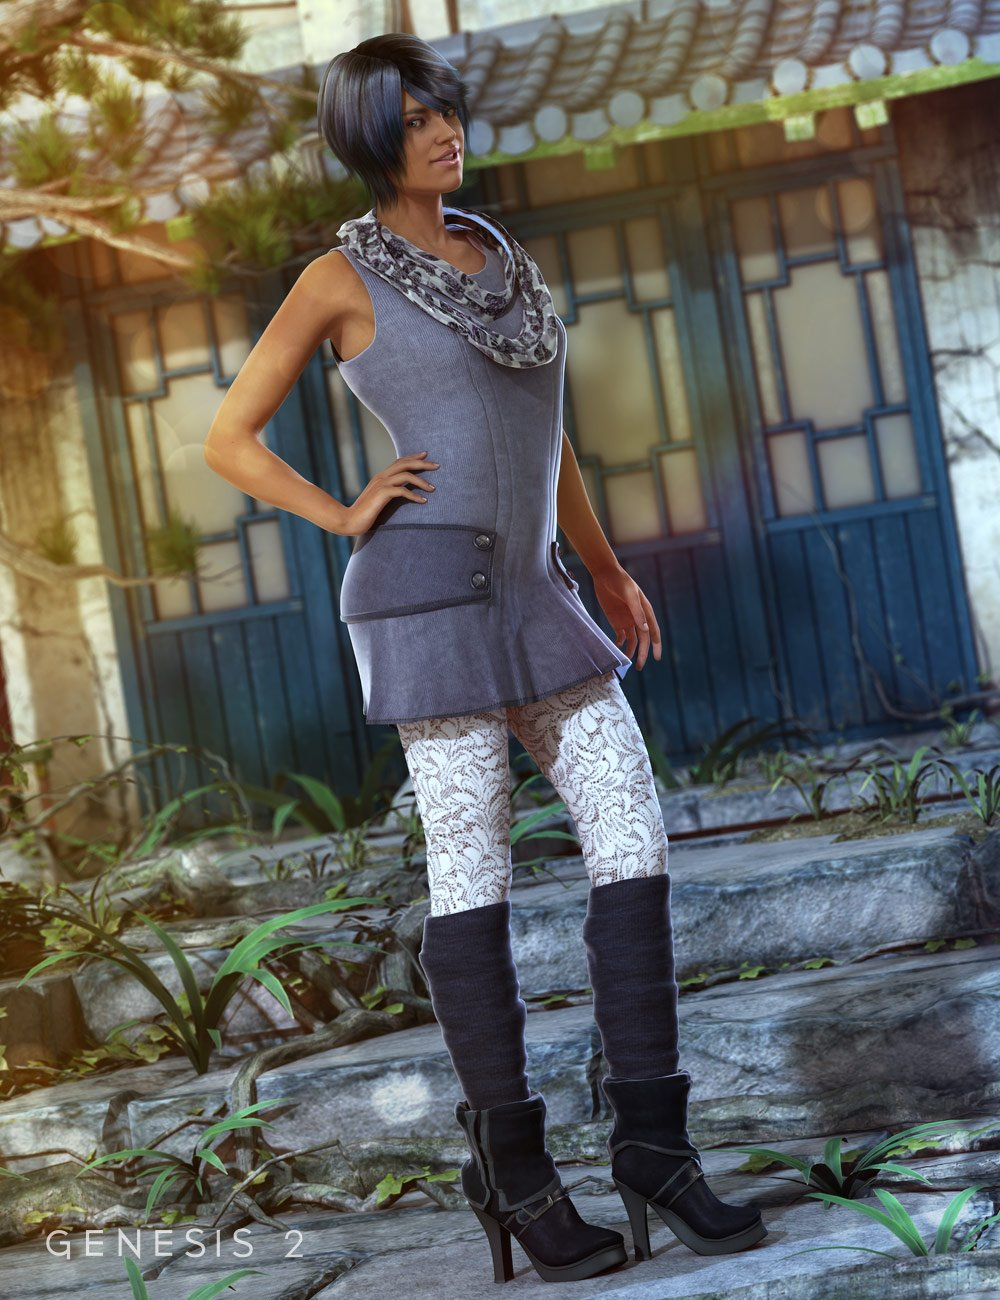 Early Spring Outfit for Genesis 2 Female(s) by: Barbara BrundonSarsa, 3D Models by Daz 3D